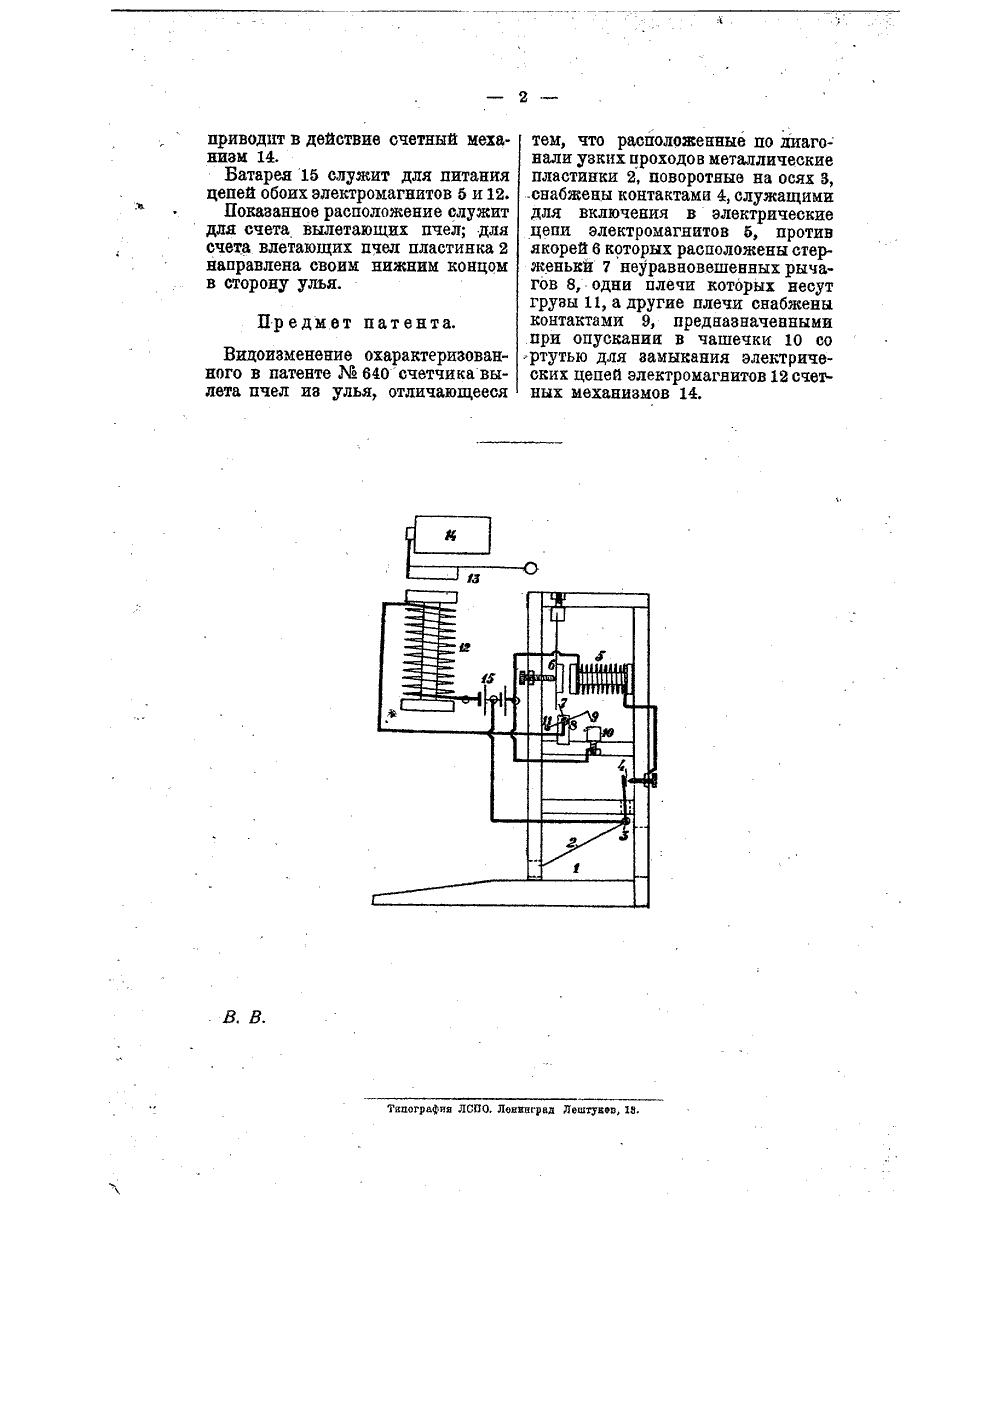 http://patents.su/patents/11626-schetchik-vyleta-pchel-iz-ulya-2.png